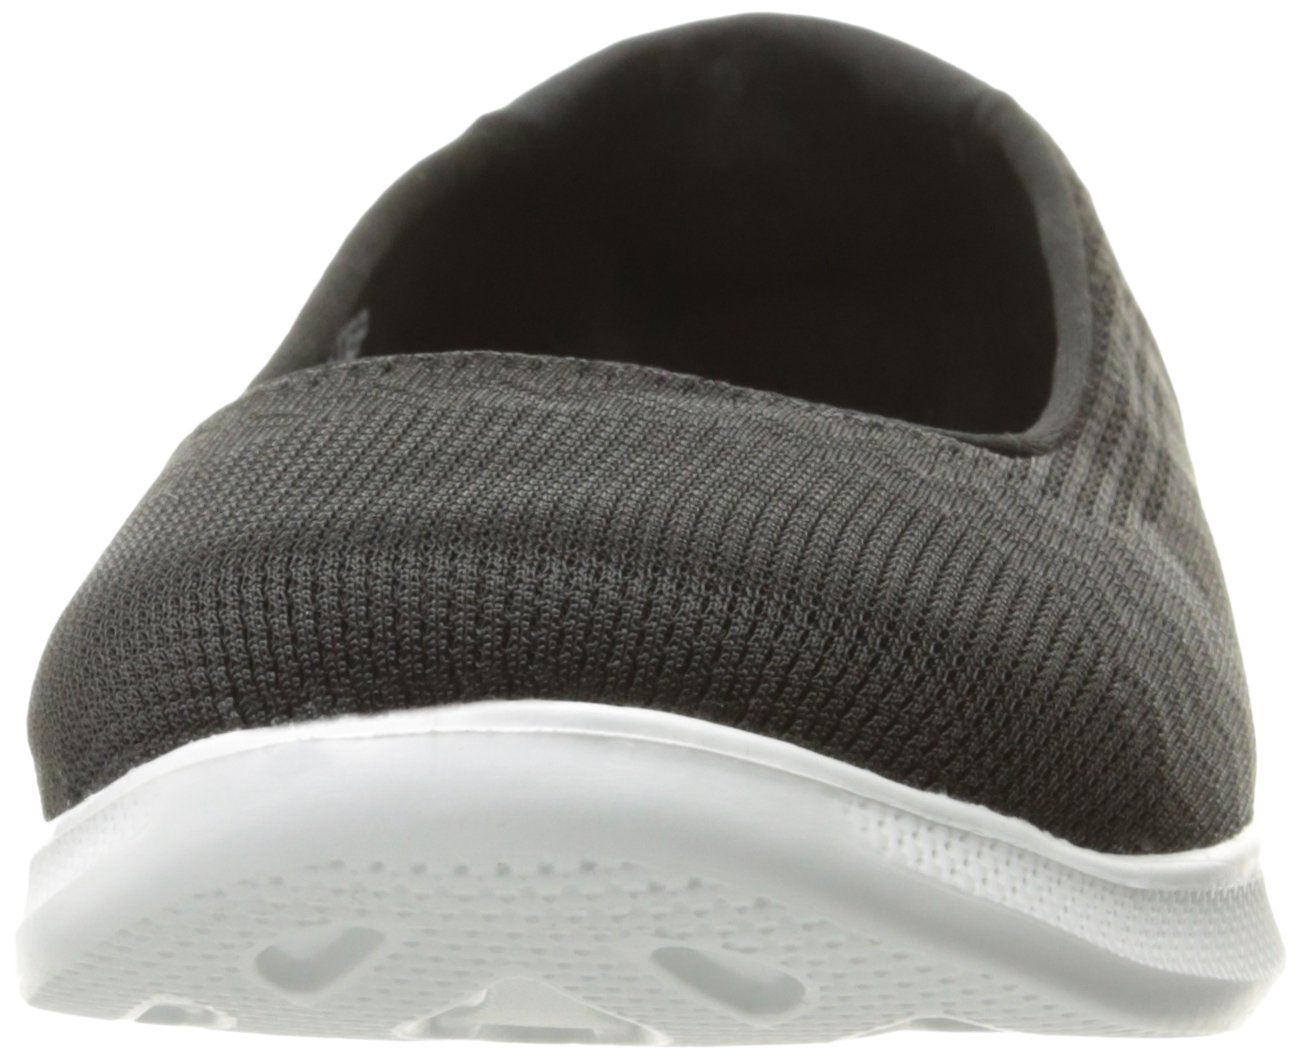 Skechers Performance Walking Women's Go Step Lite-Solace Walking Performance Shoe B01N0XDH8Q 8.5 B(M) US|Black/White 3a776d